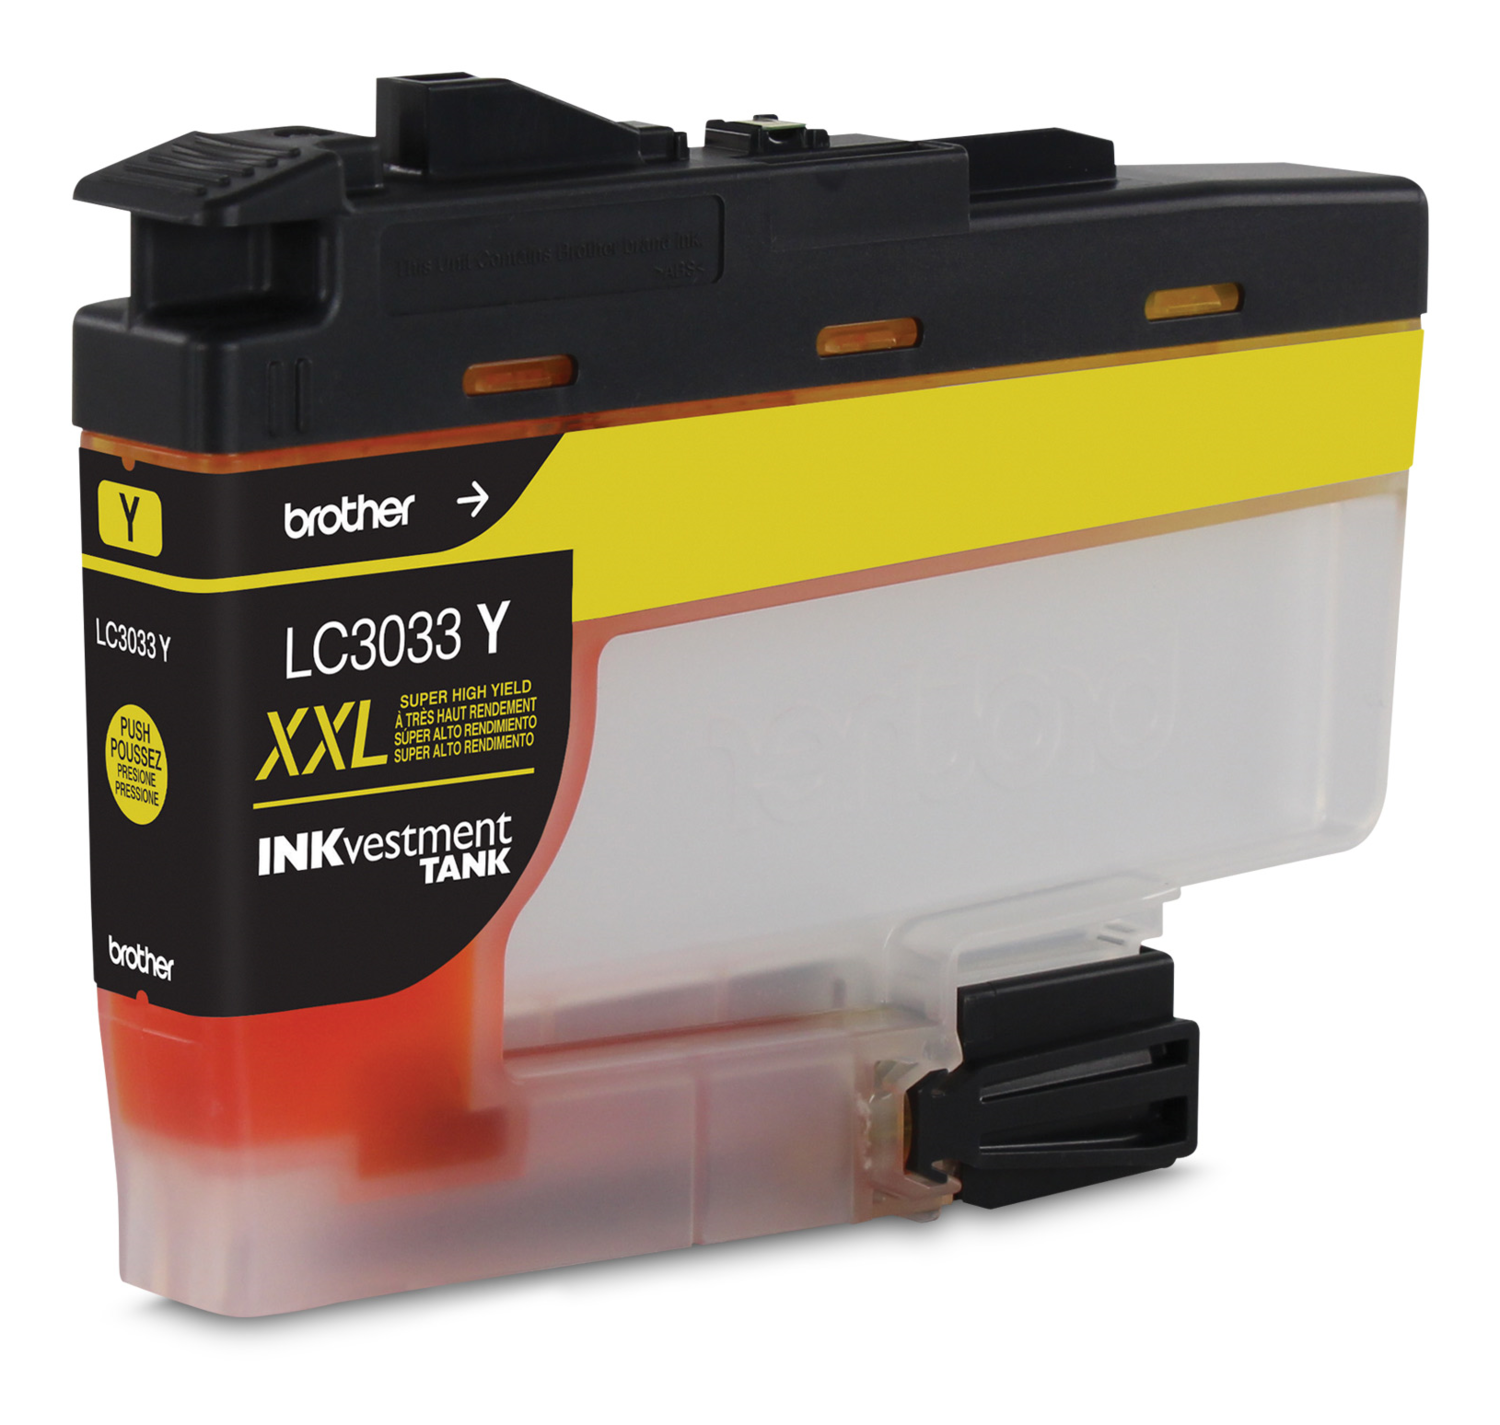 Brother Ink Lc3033YS XXL Yellow